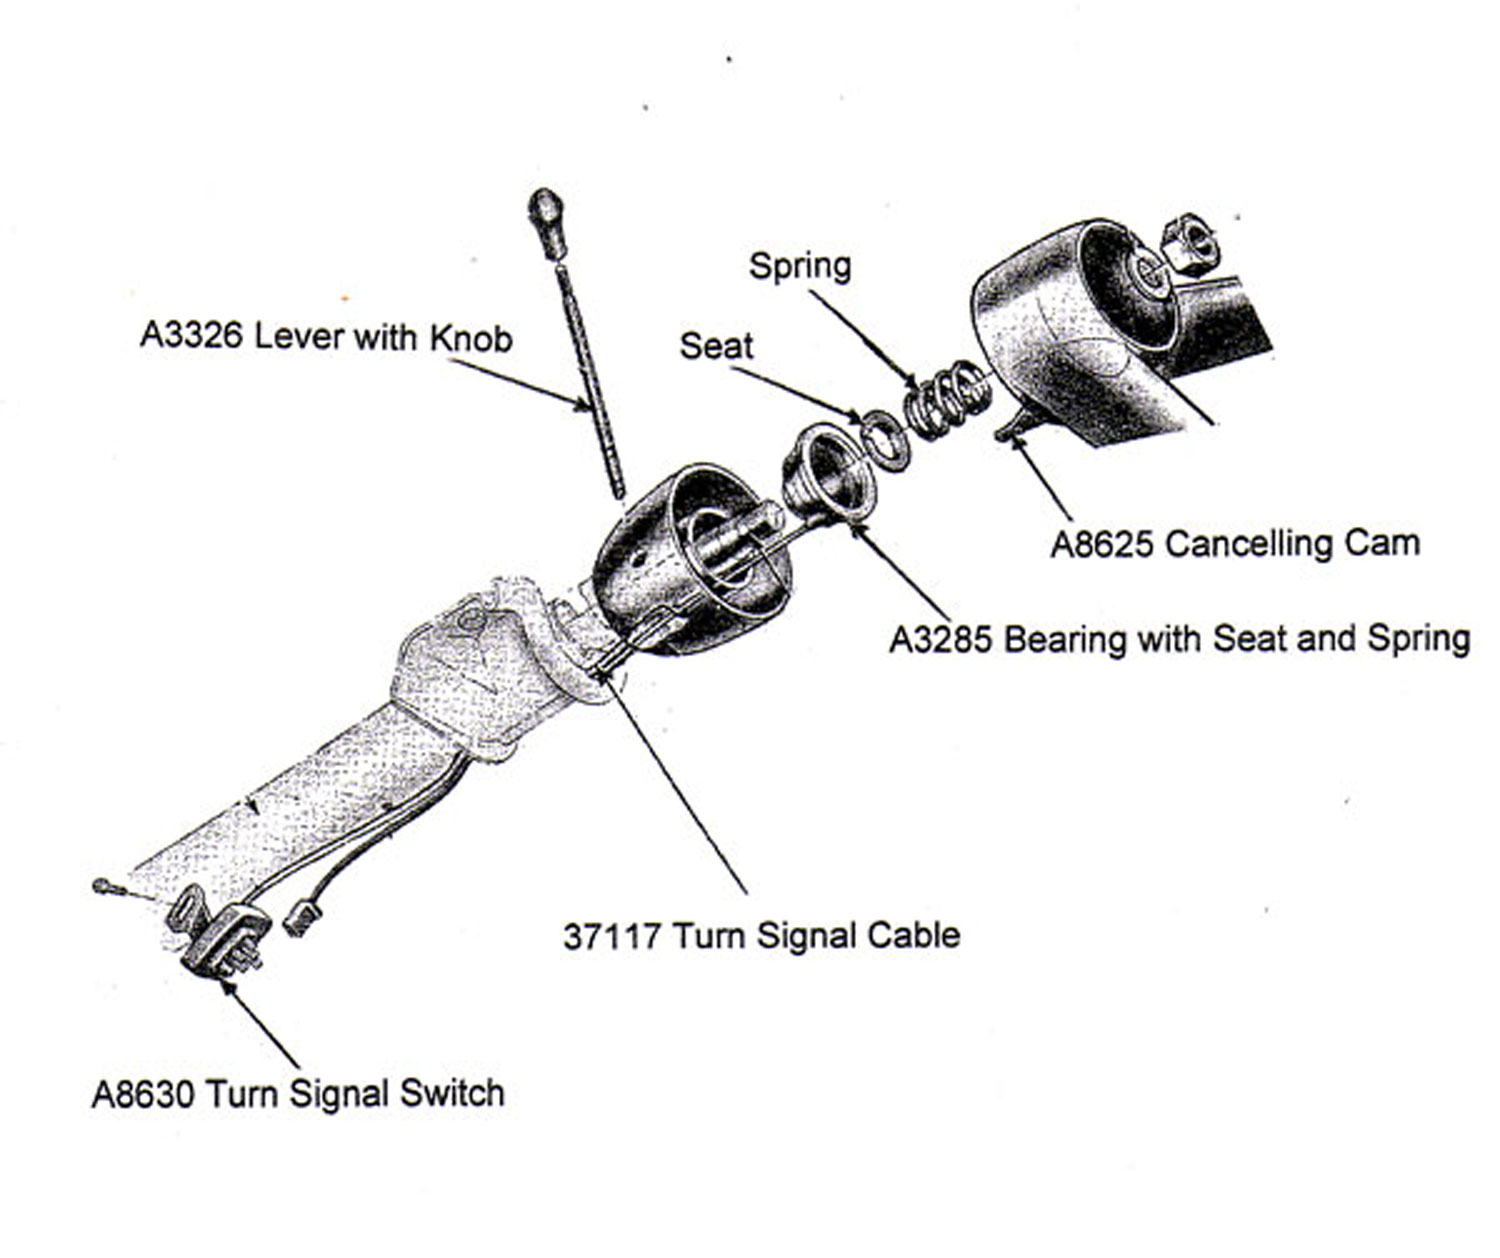 hight resolution of 1960 corvette steering column diagram wiring circuit u2022 jeep steering column diagram 1978 gm steering